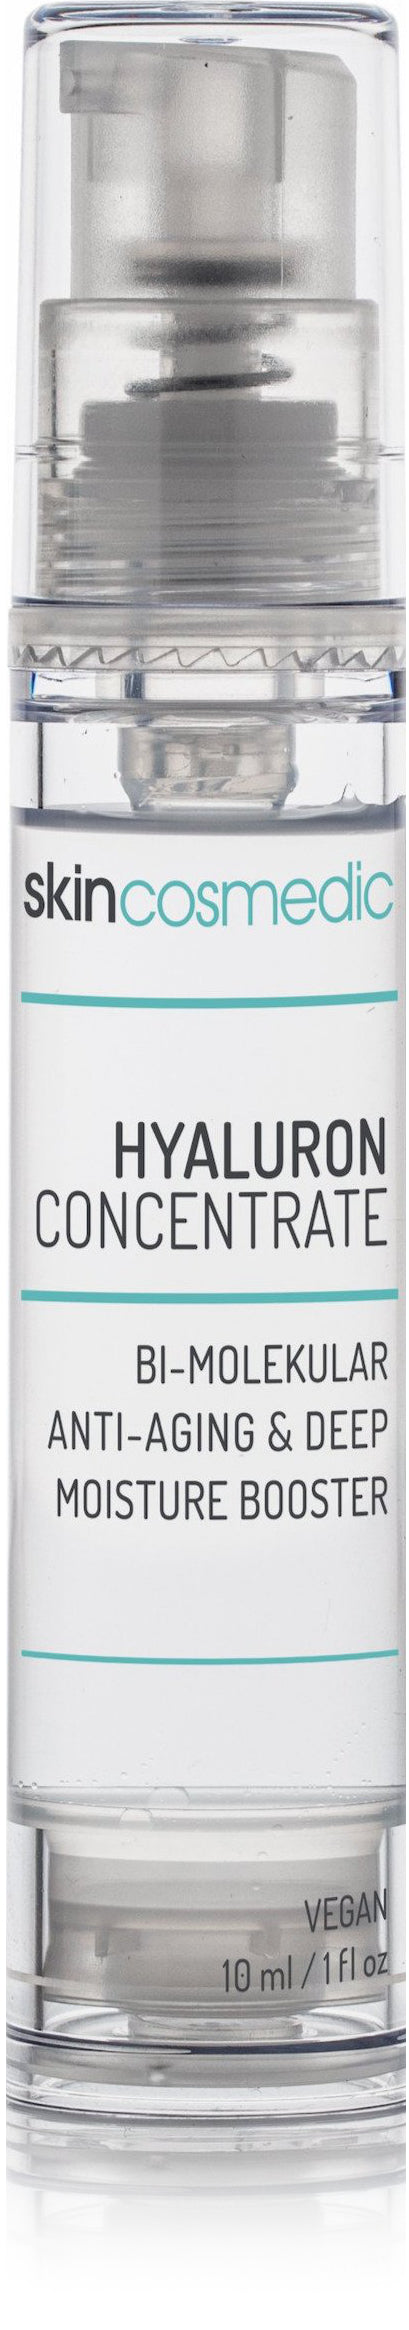 Hyaluron Concentrate Bi-Molekular - Anti-Aging - Deep Moisture 10ml